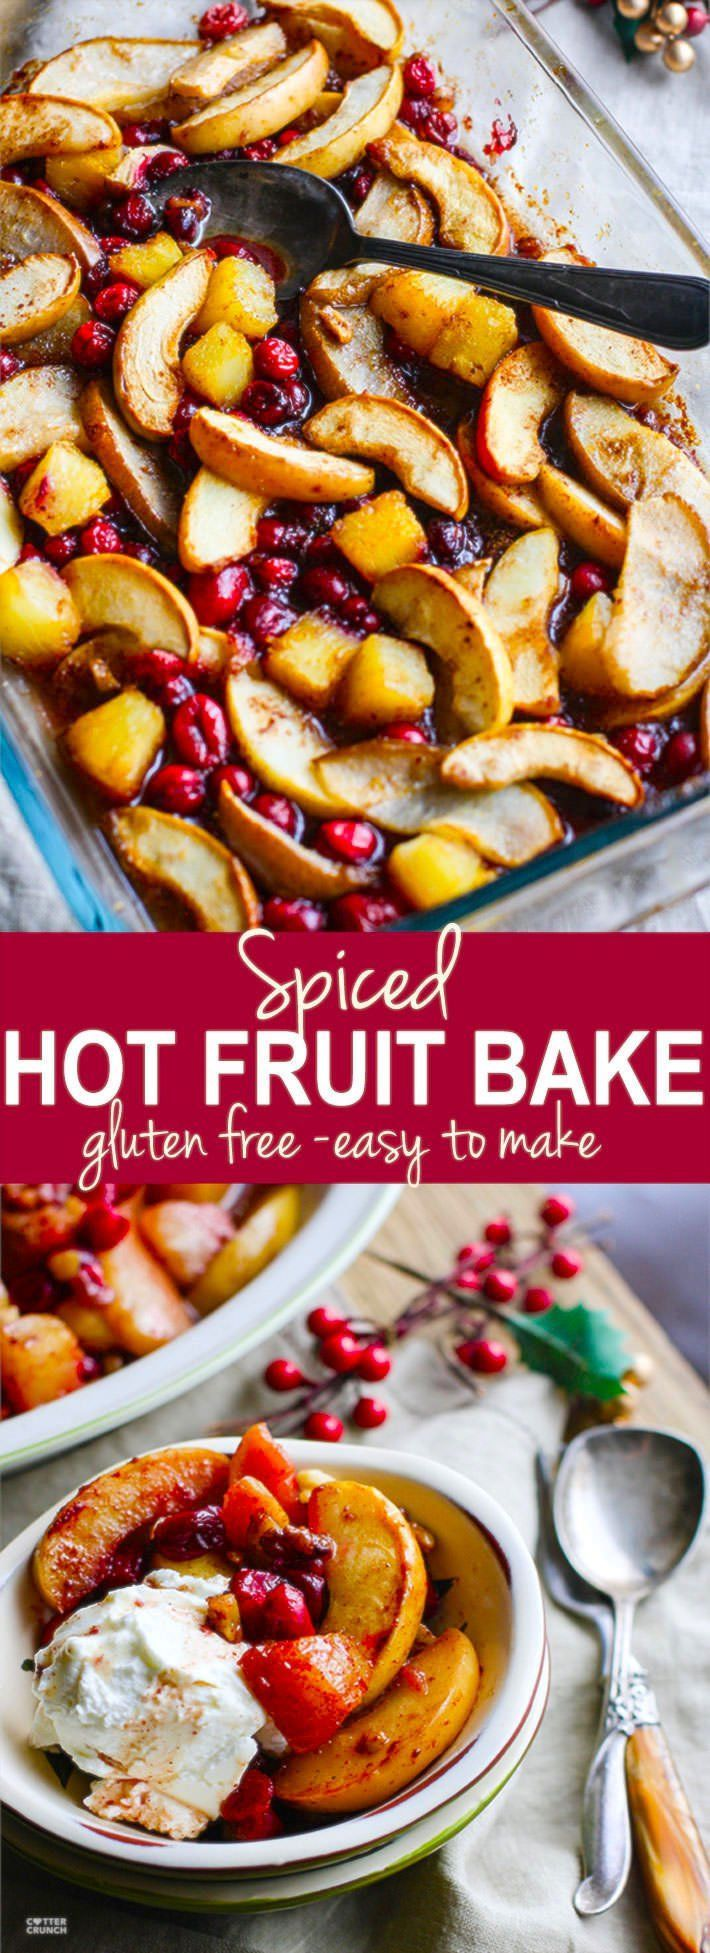 Easy Spiced Hot Fruit Bake! A delicious and healthy holiday breakfast bake! This gluten free spiced hot fruit bake also makes for a great topping for waffles, pancakes, oatmeal, or simply by itself! A nutritious dish to add to your Christmas or New Year's Brunch! Vegan friendly. http://www.cottercrunch.com